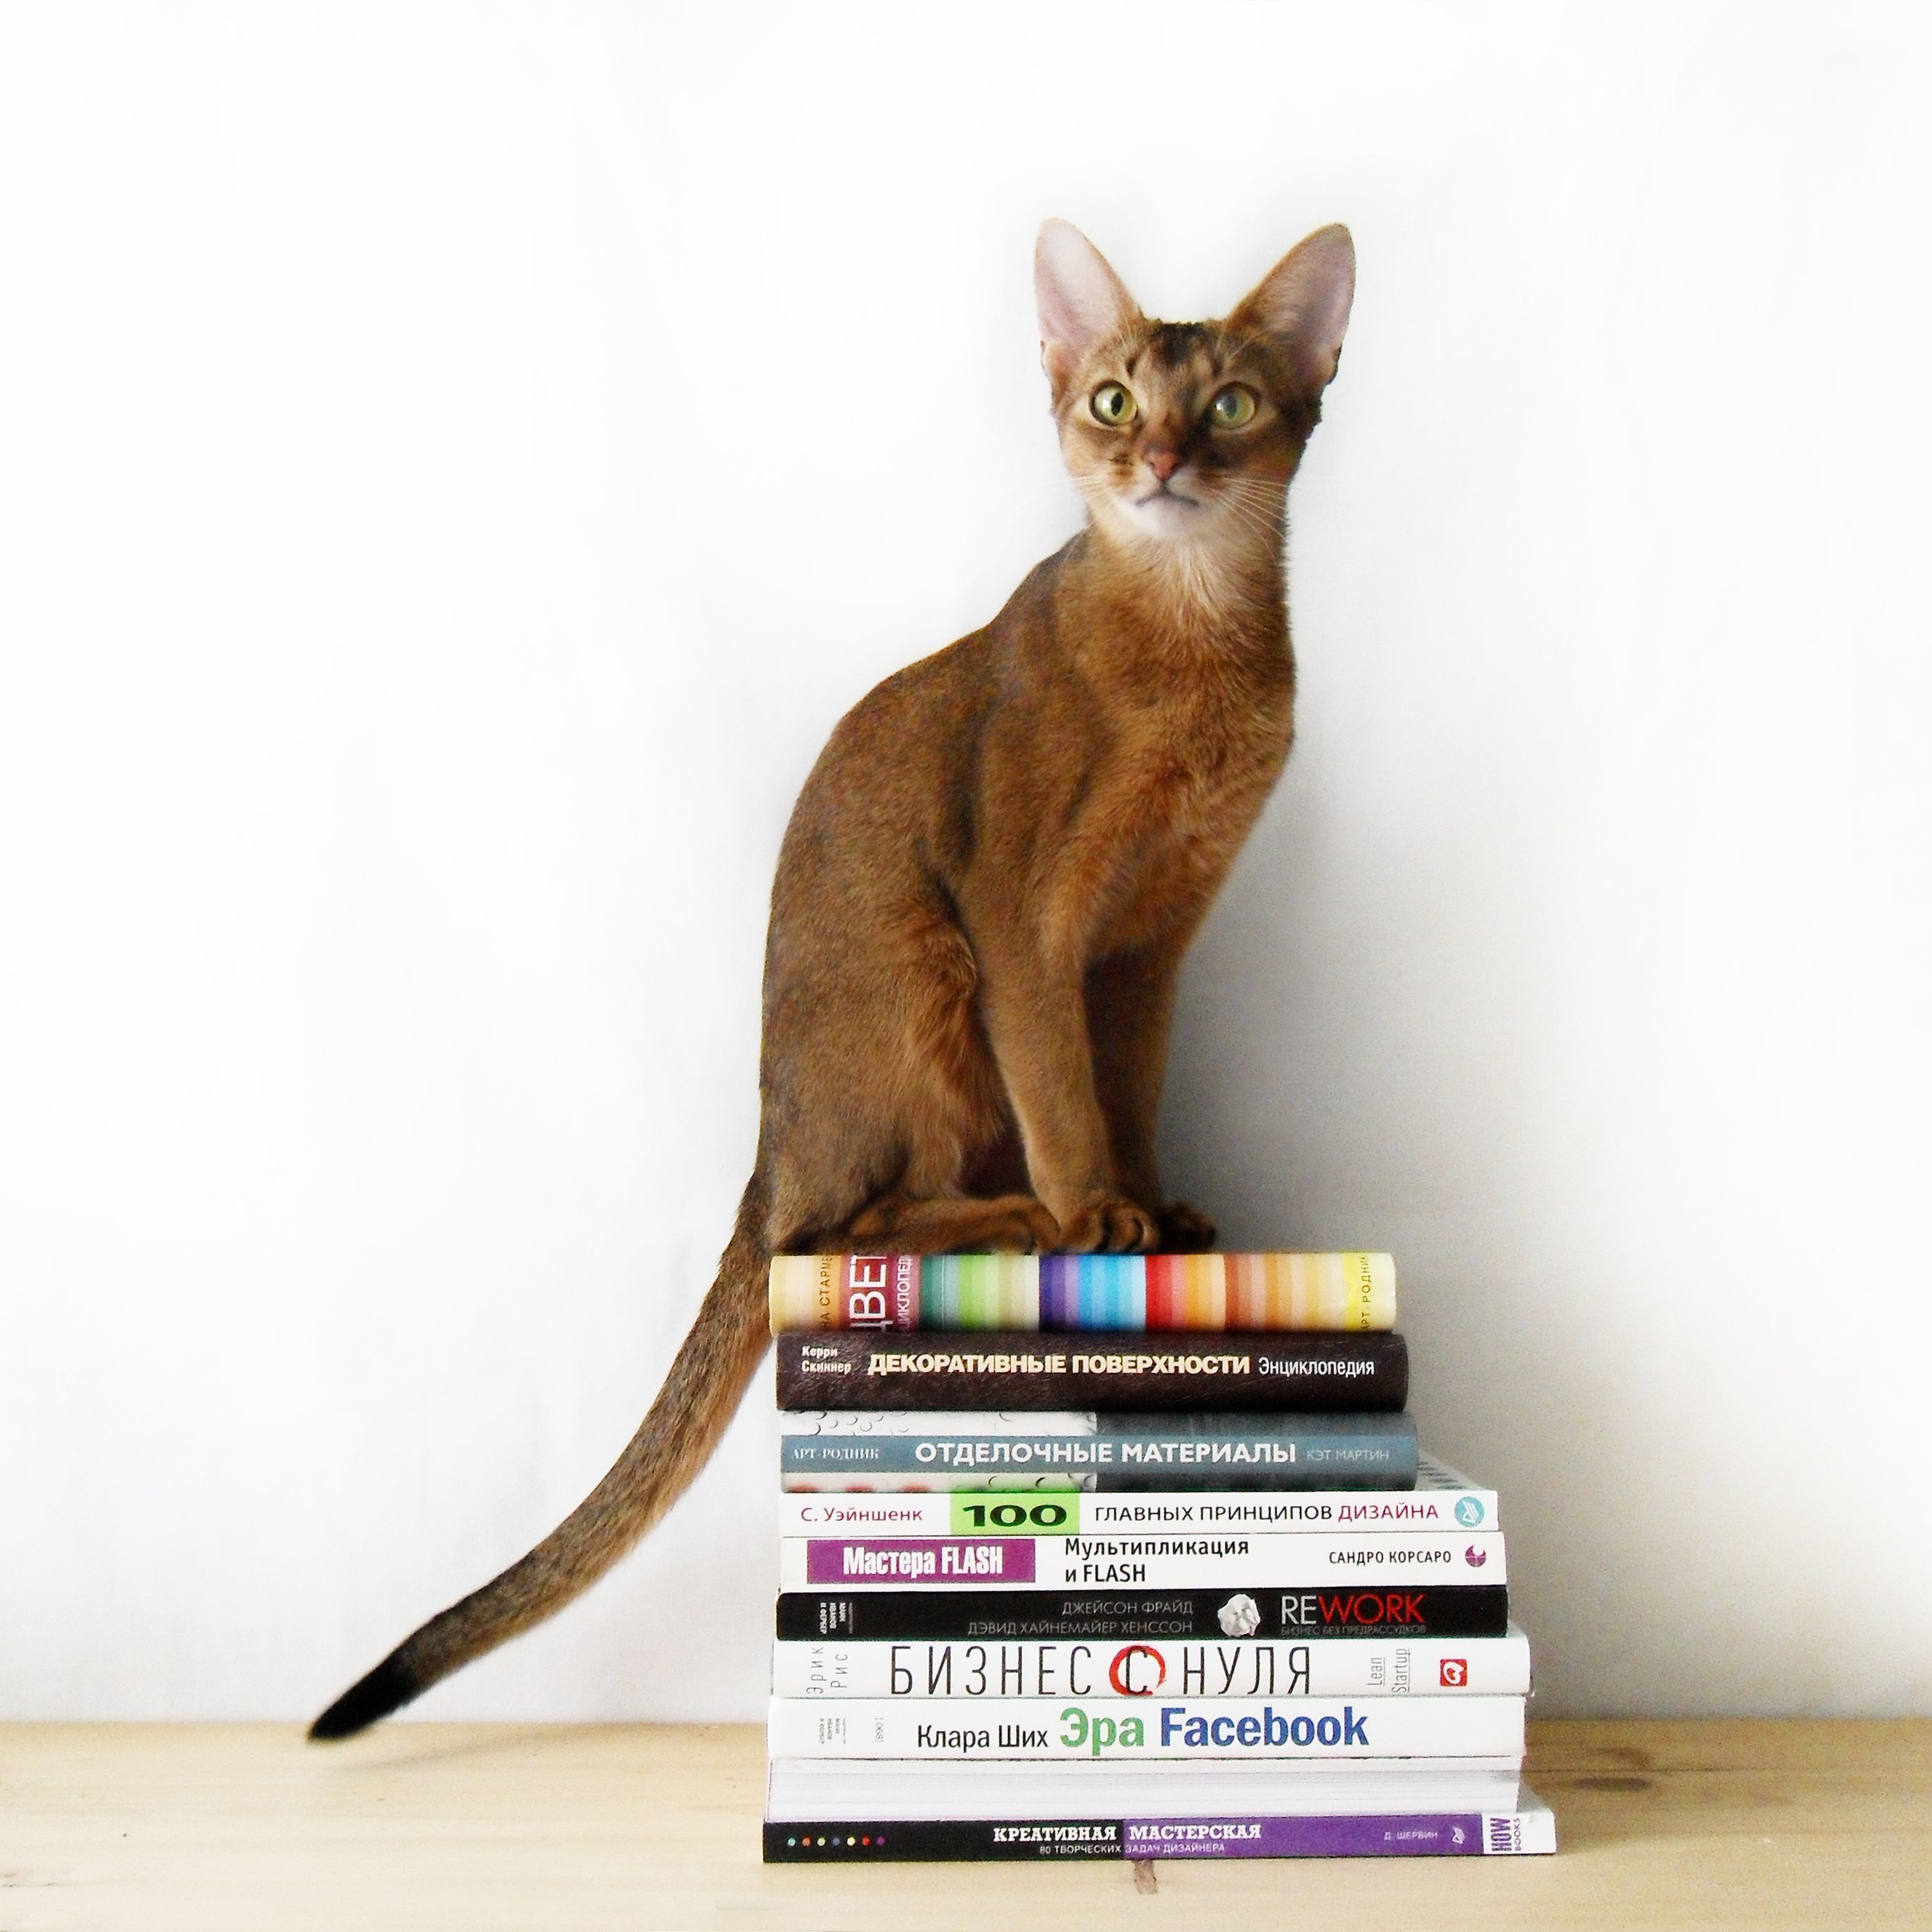 Cat Sitting On The Books Chat Abyssin Abyssin Chat